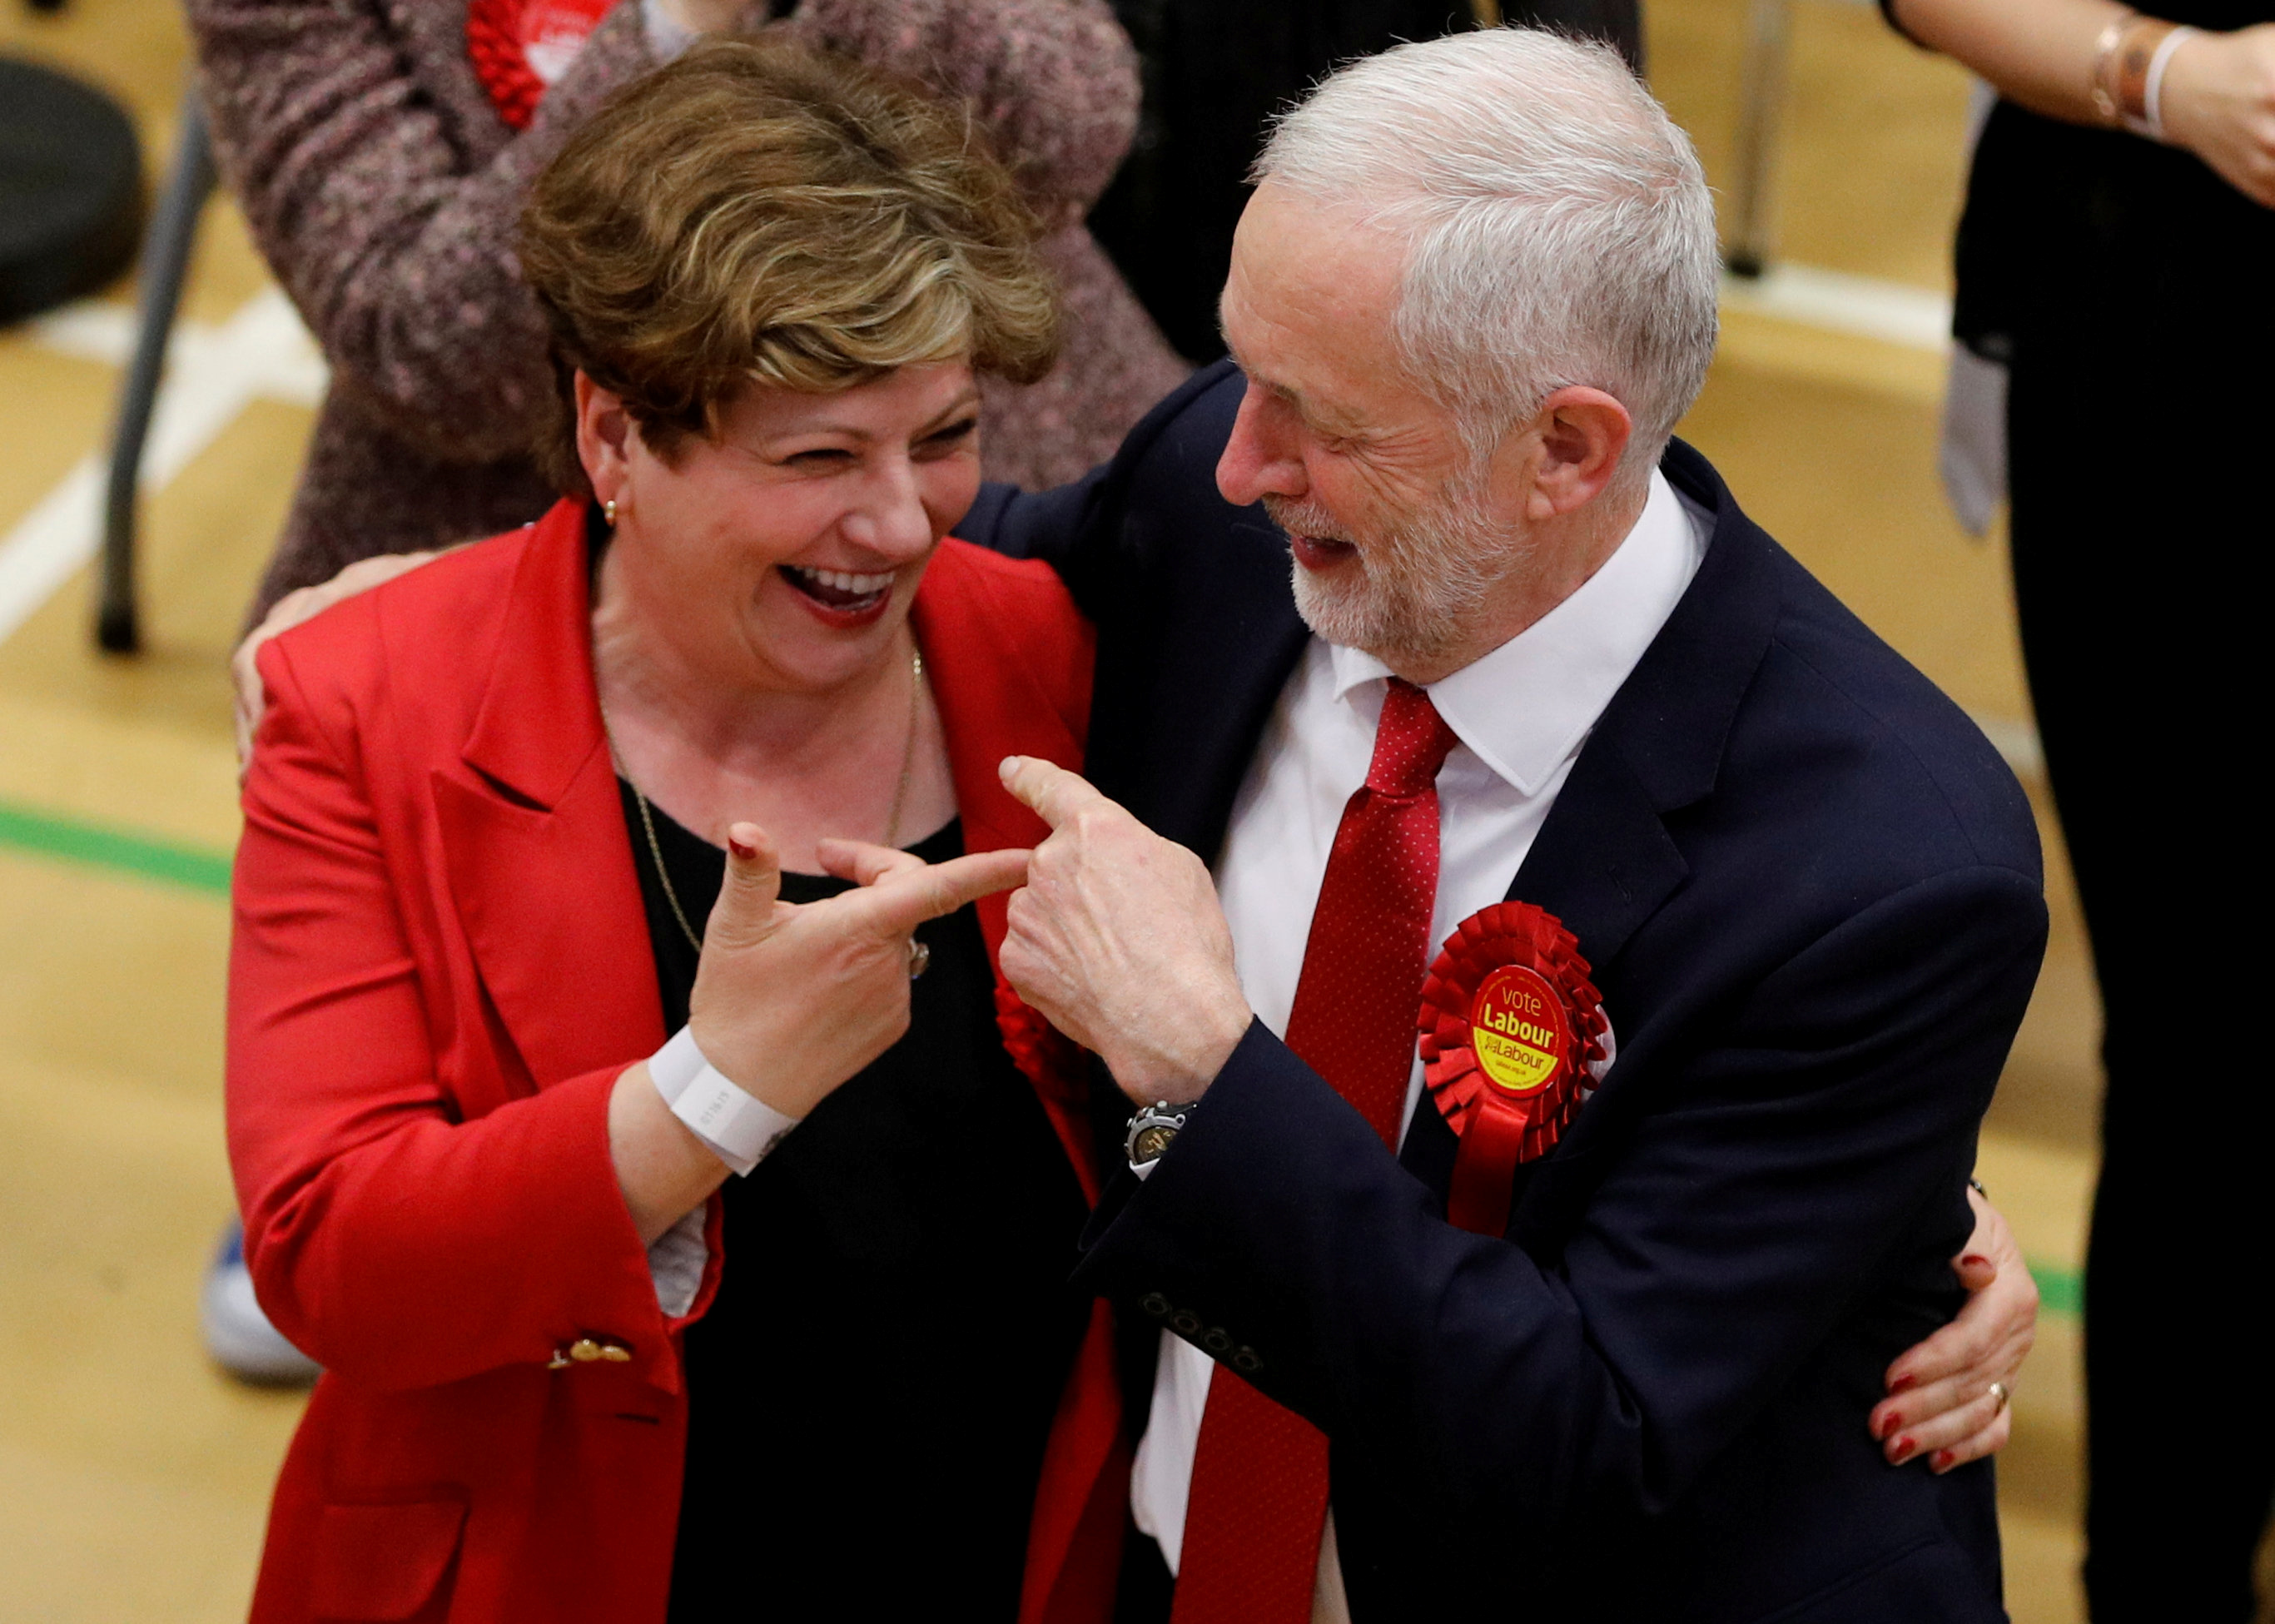 British Labour Party leader Jeremy Corbyn with Emily Thornberry at a General Election count